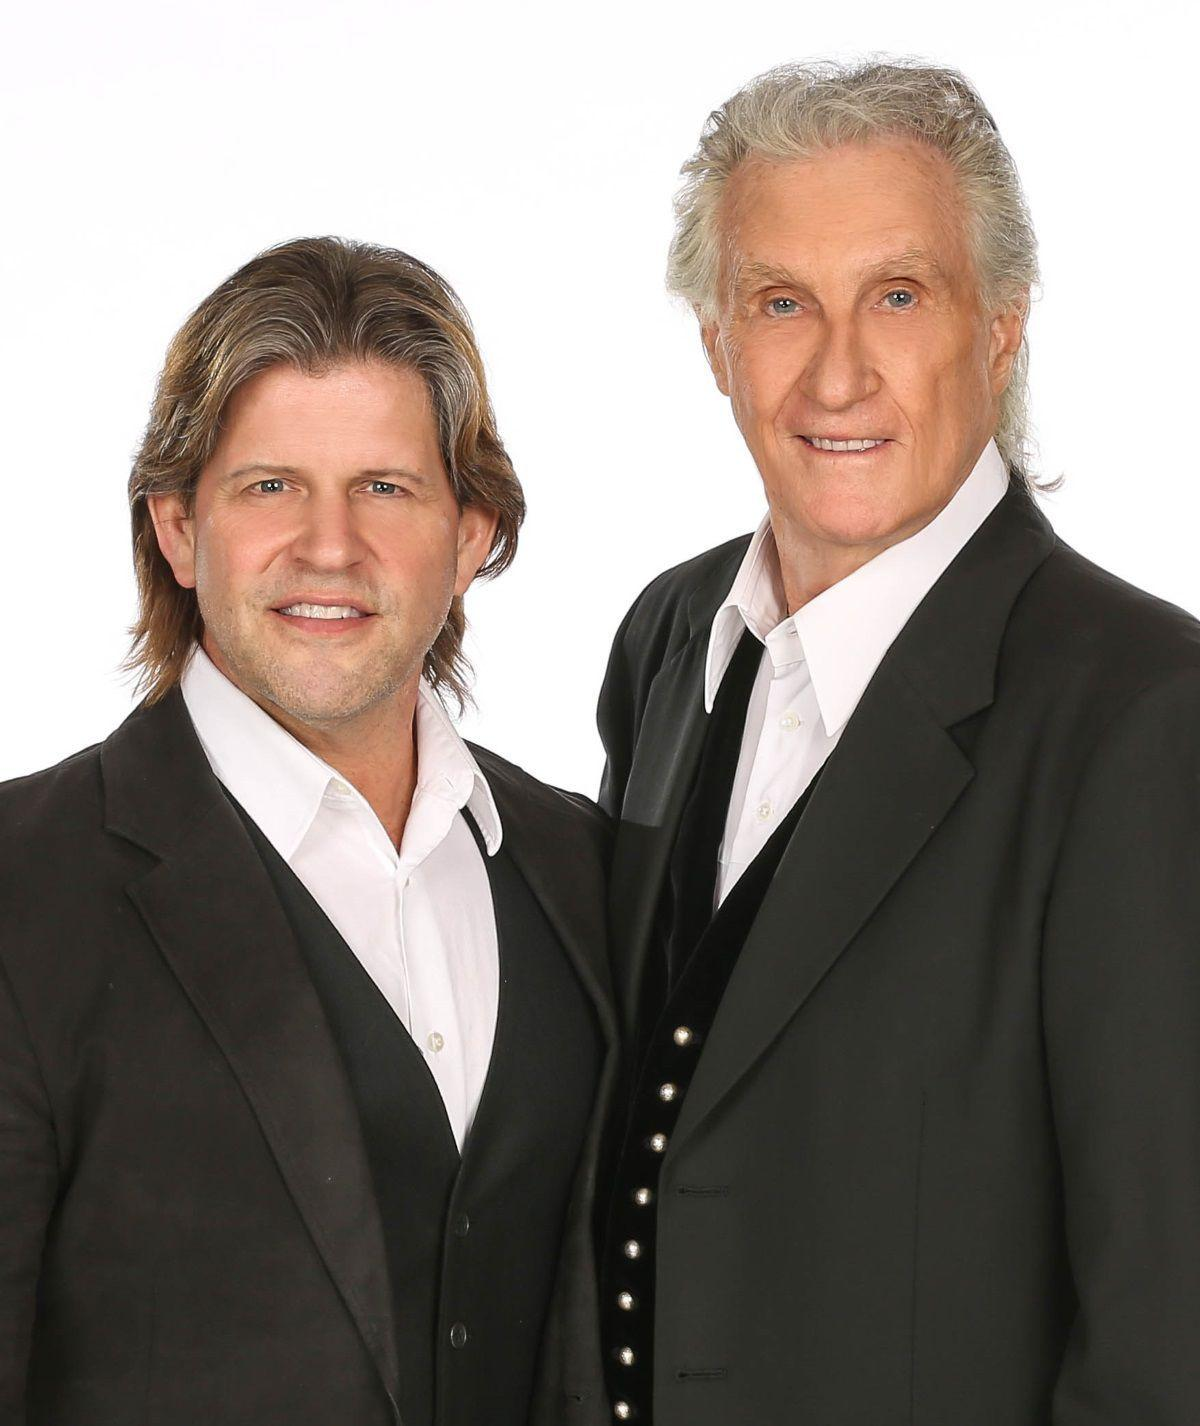 The Righteous Brothers play Mayo